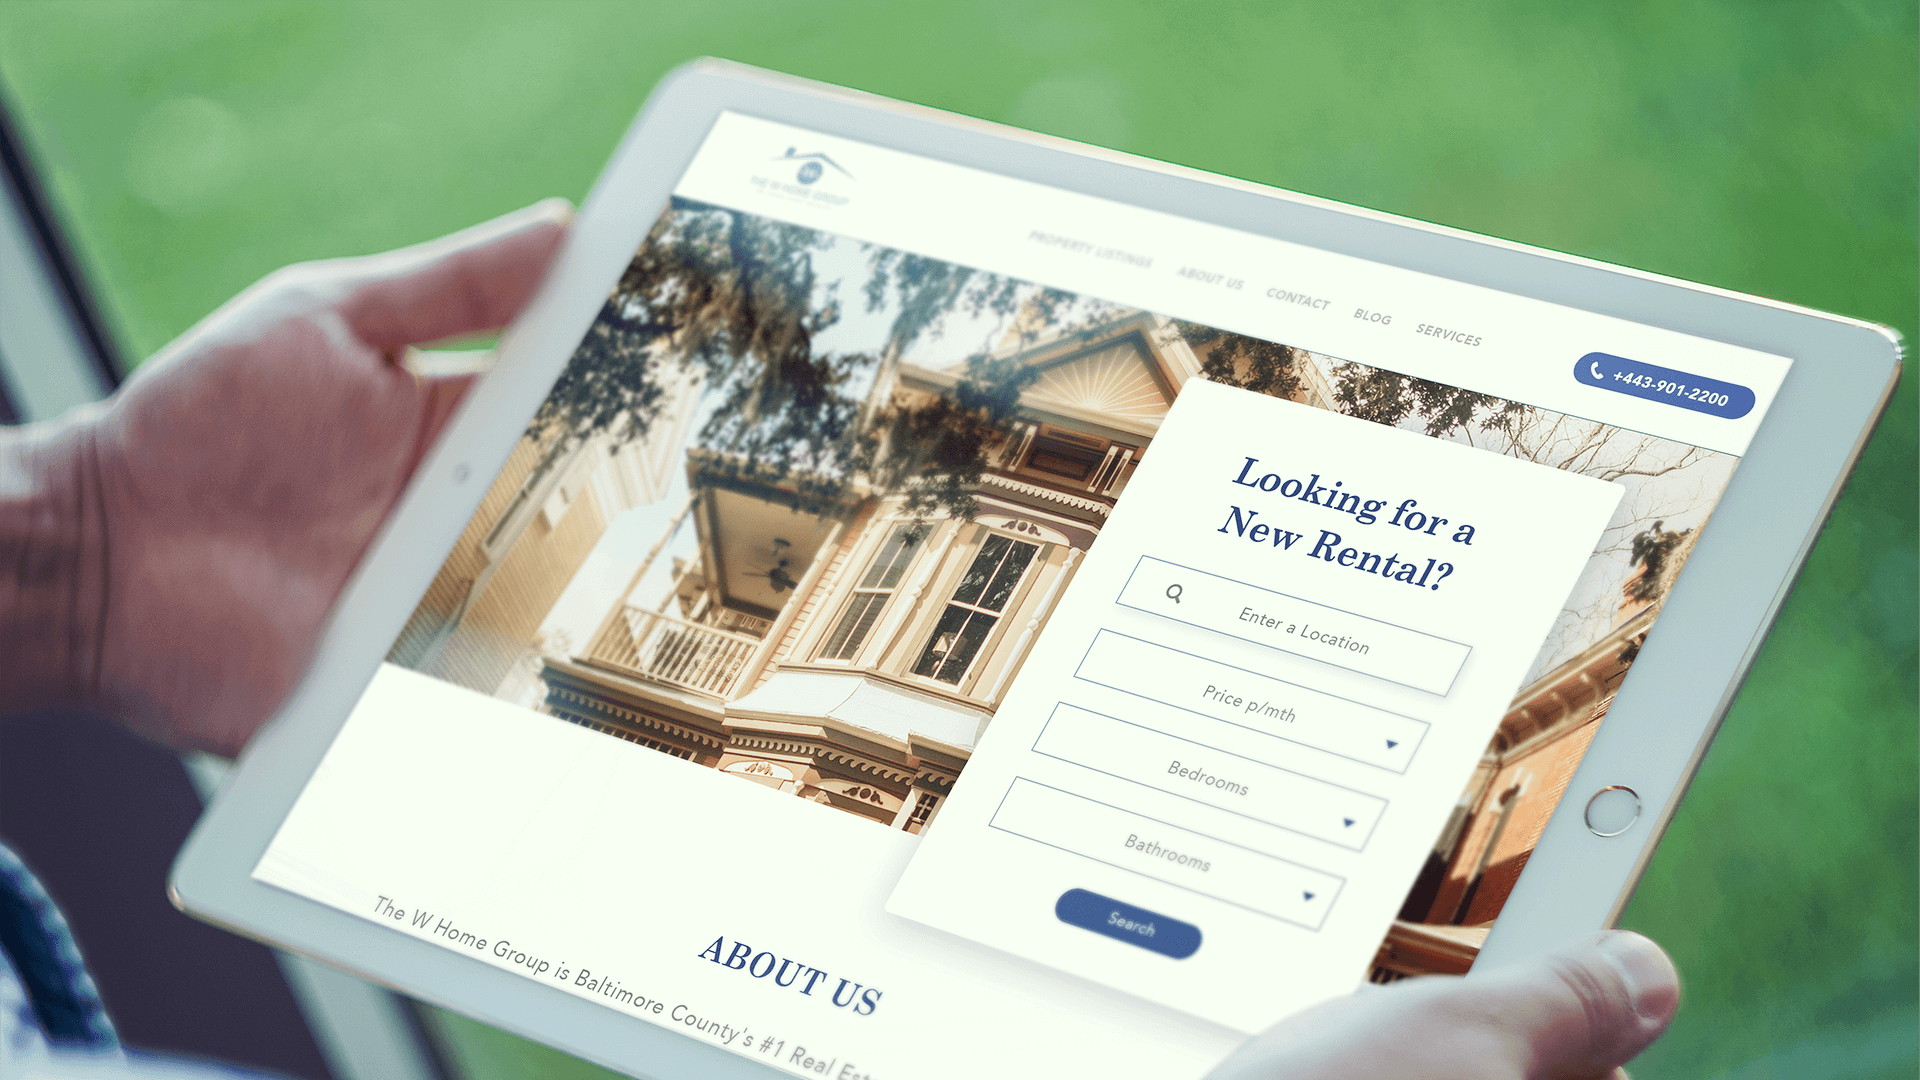 W Homes Group Landing Page